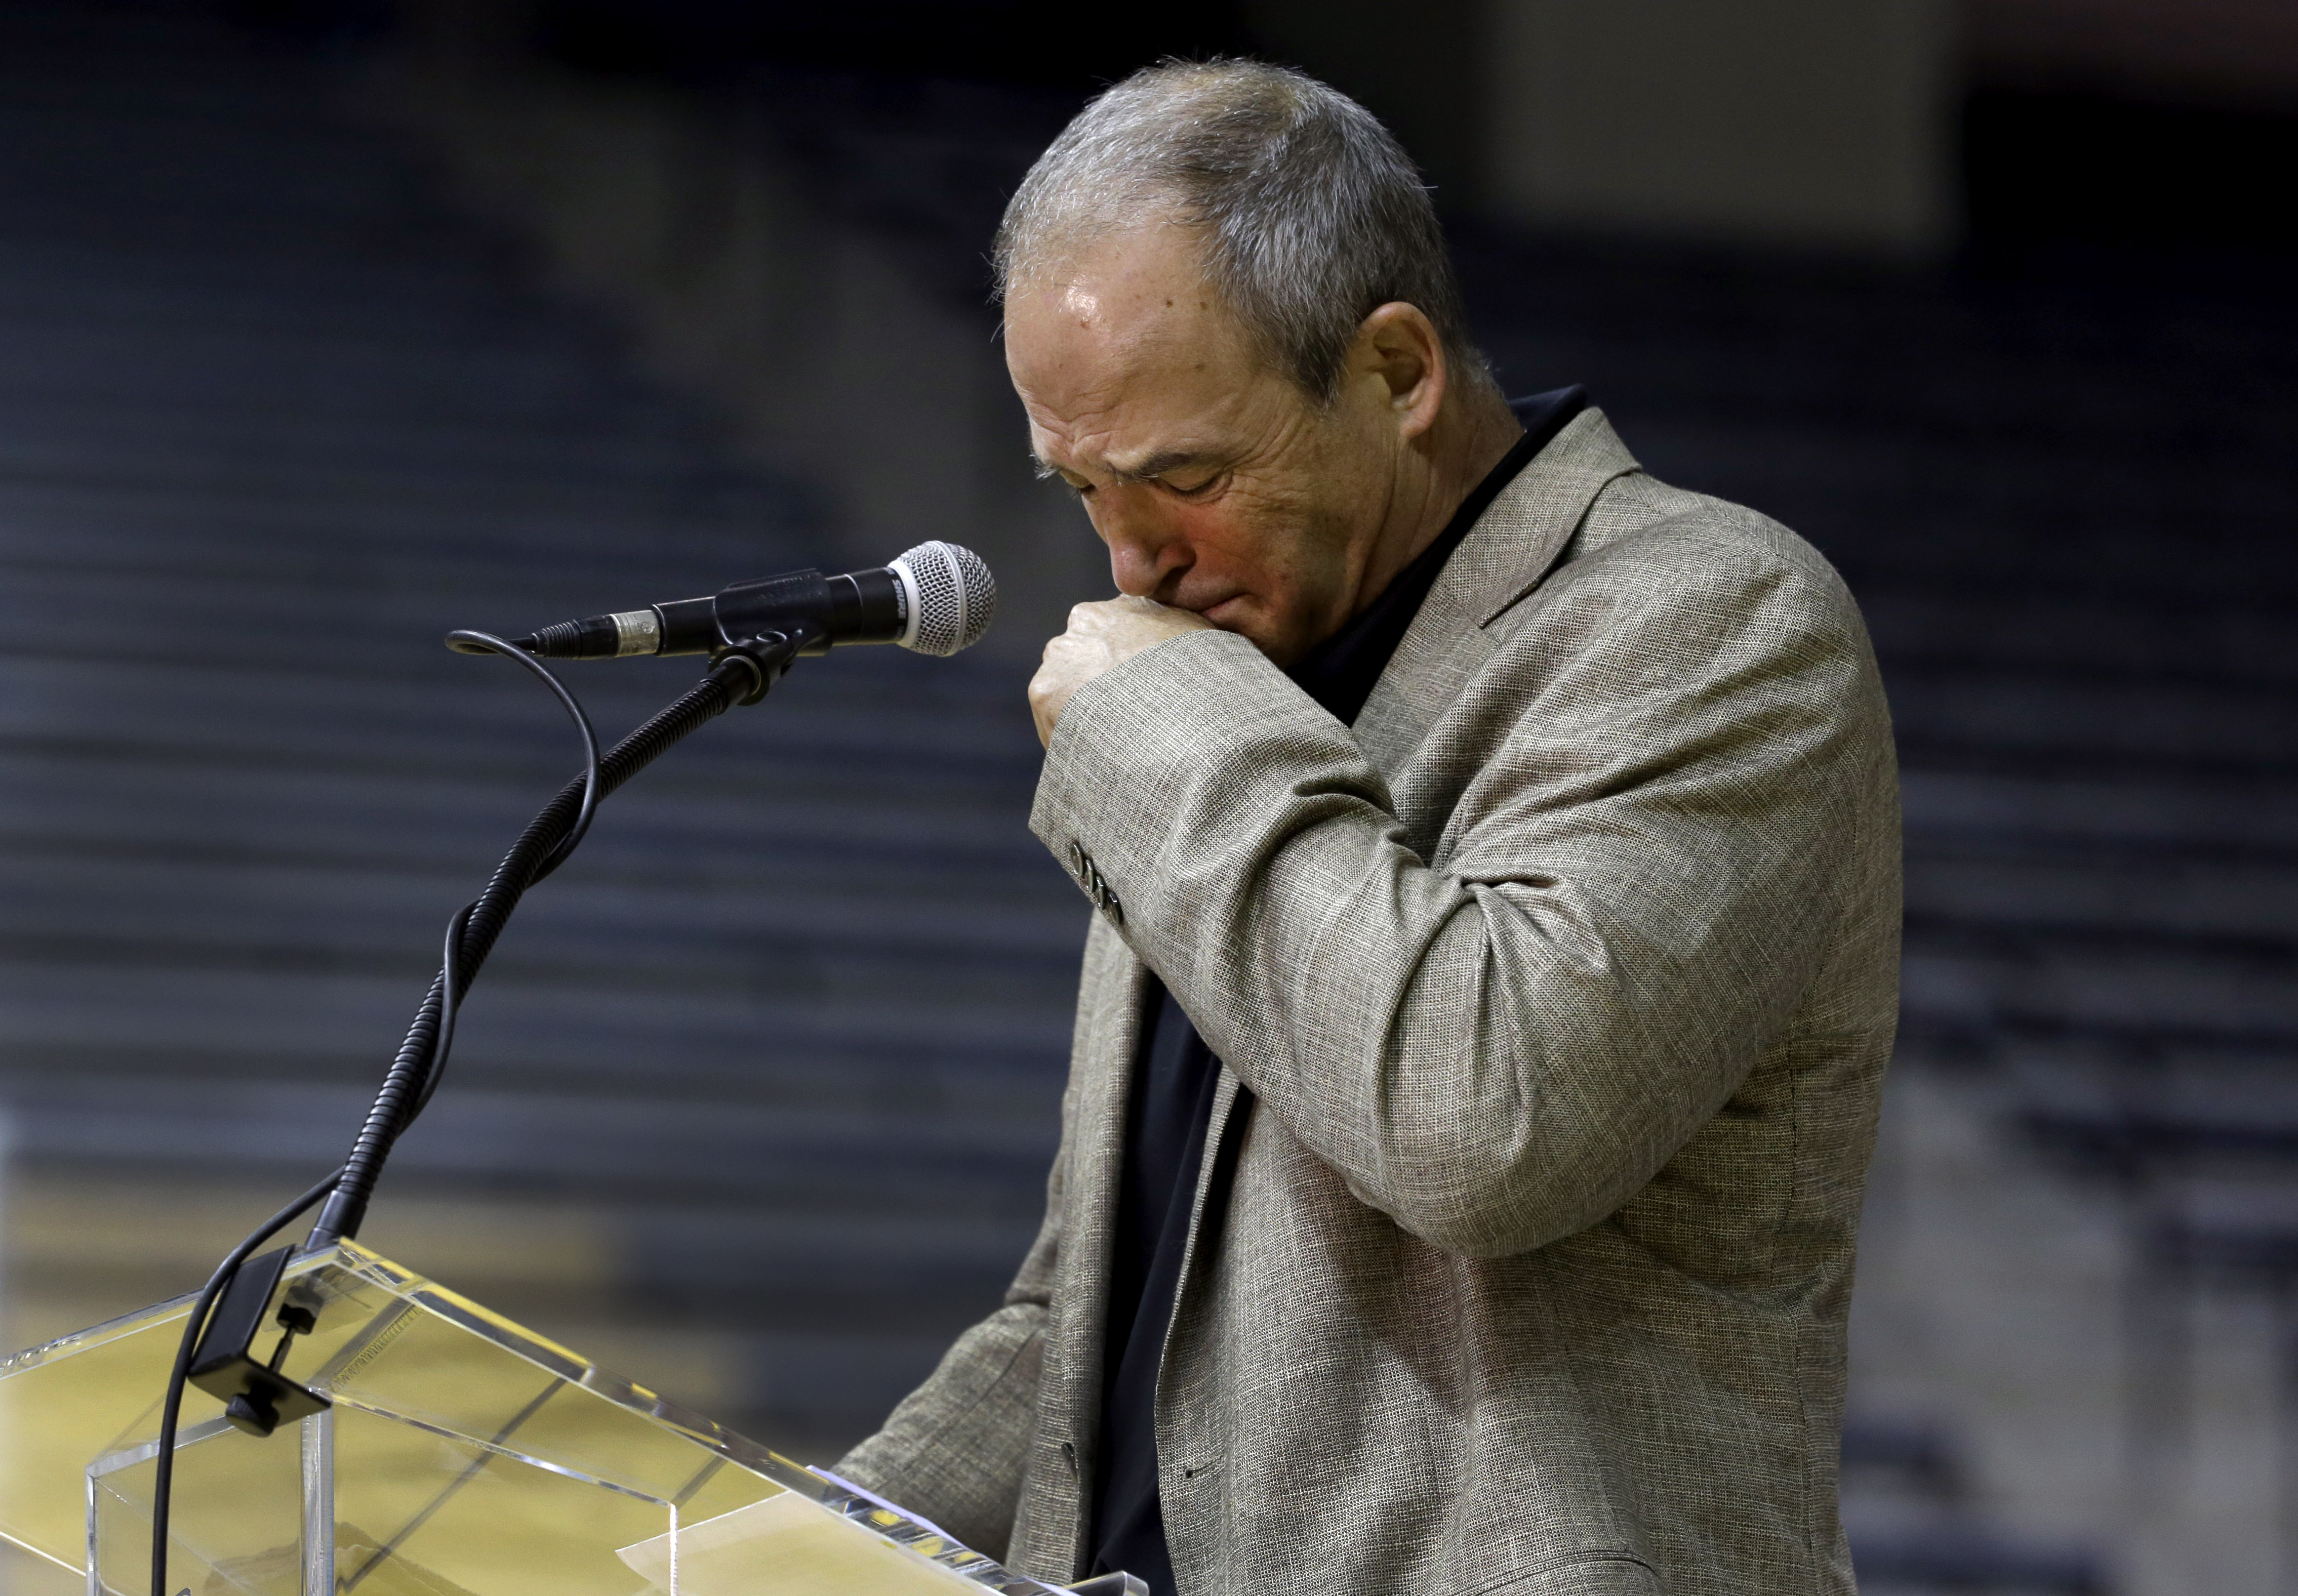 University of Missouri head football coach Gary Pinkel pauses while speaking about his players during a news conference Monday, Nov. 16, 2015, in Columbia, Mo. Pinkel has announced he will resign following the 2015 season after being diagnosed with lympho